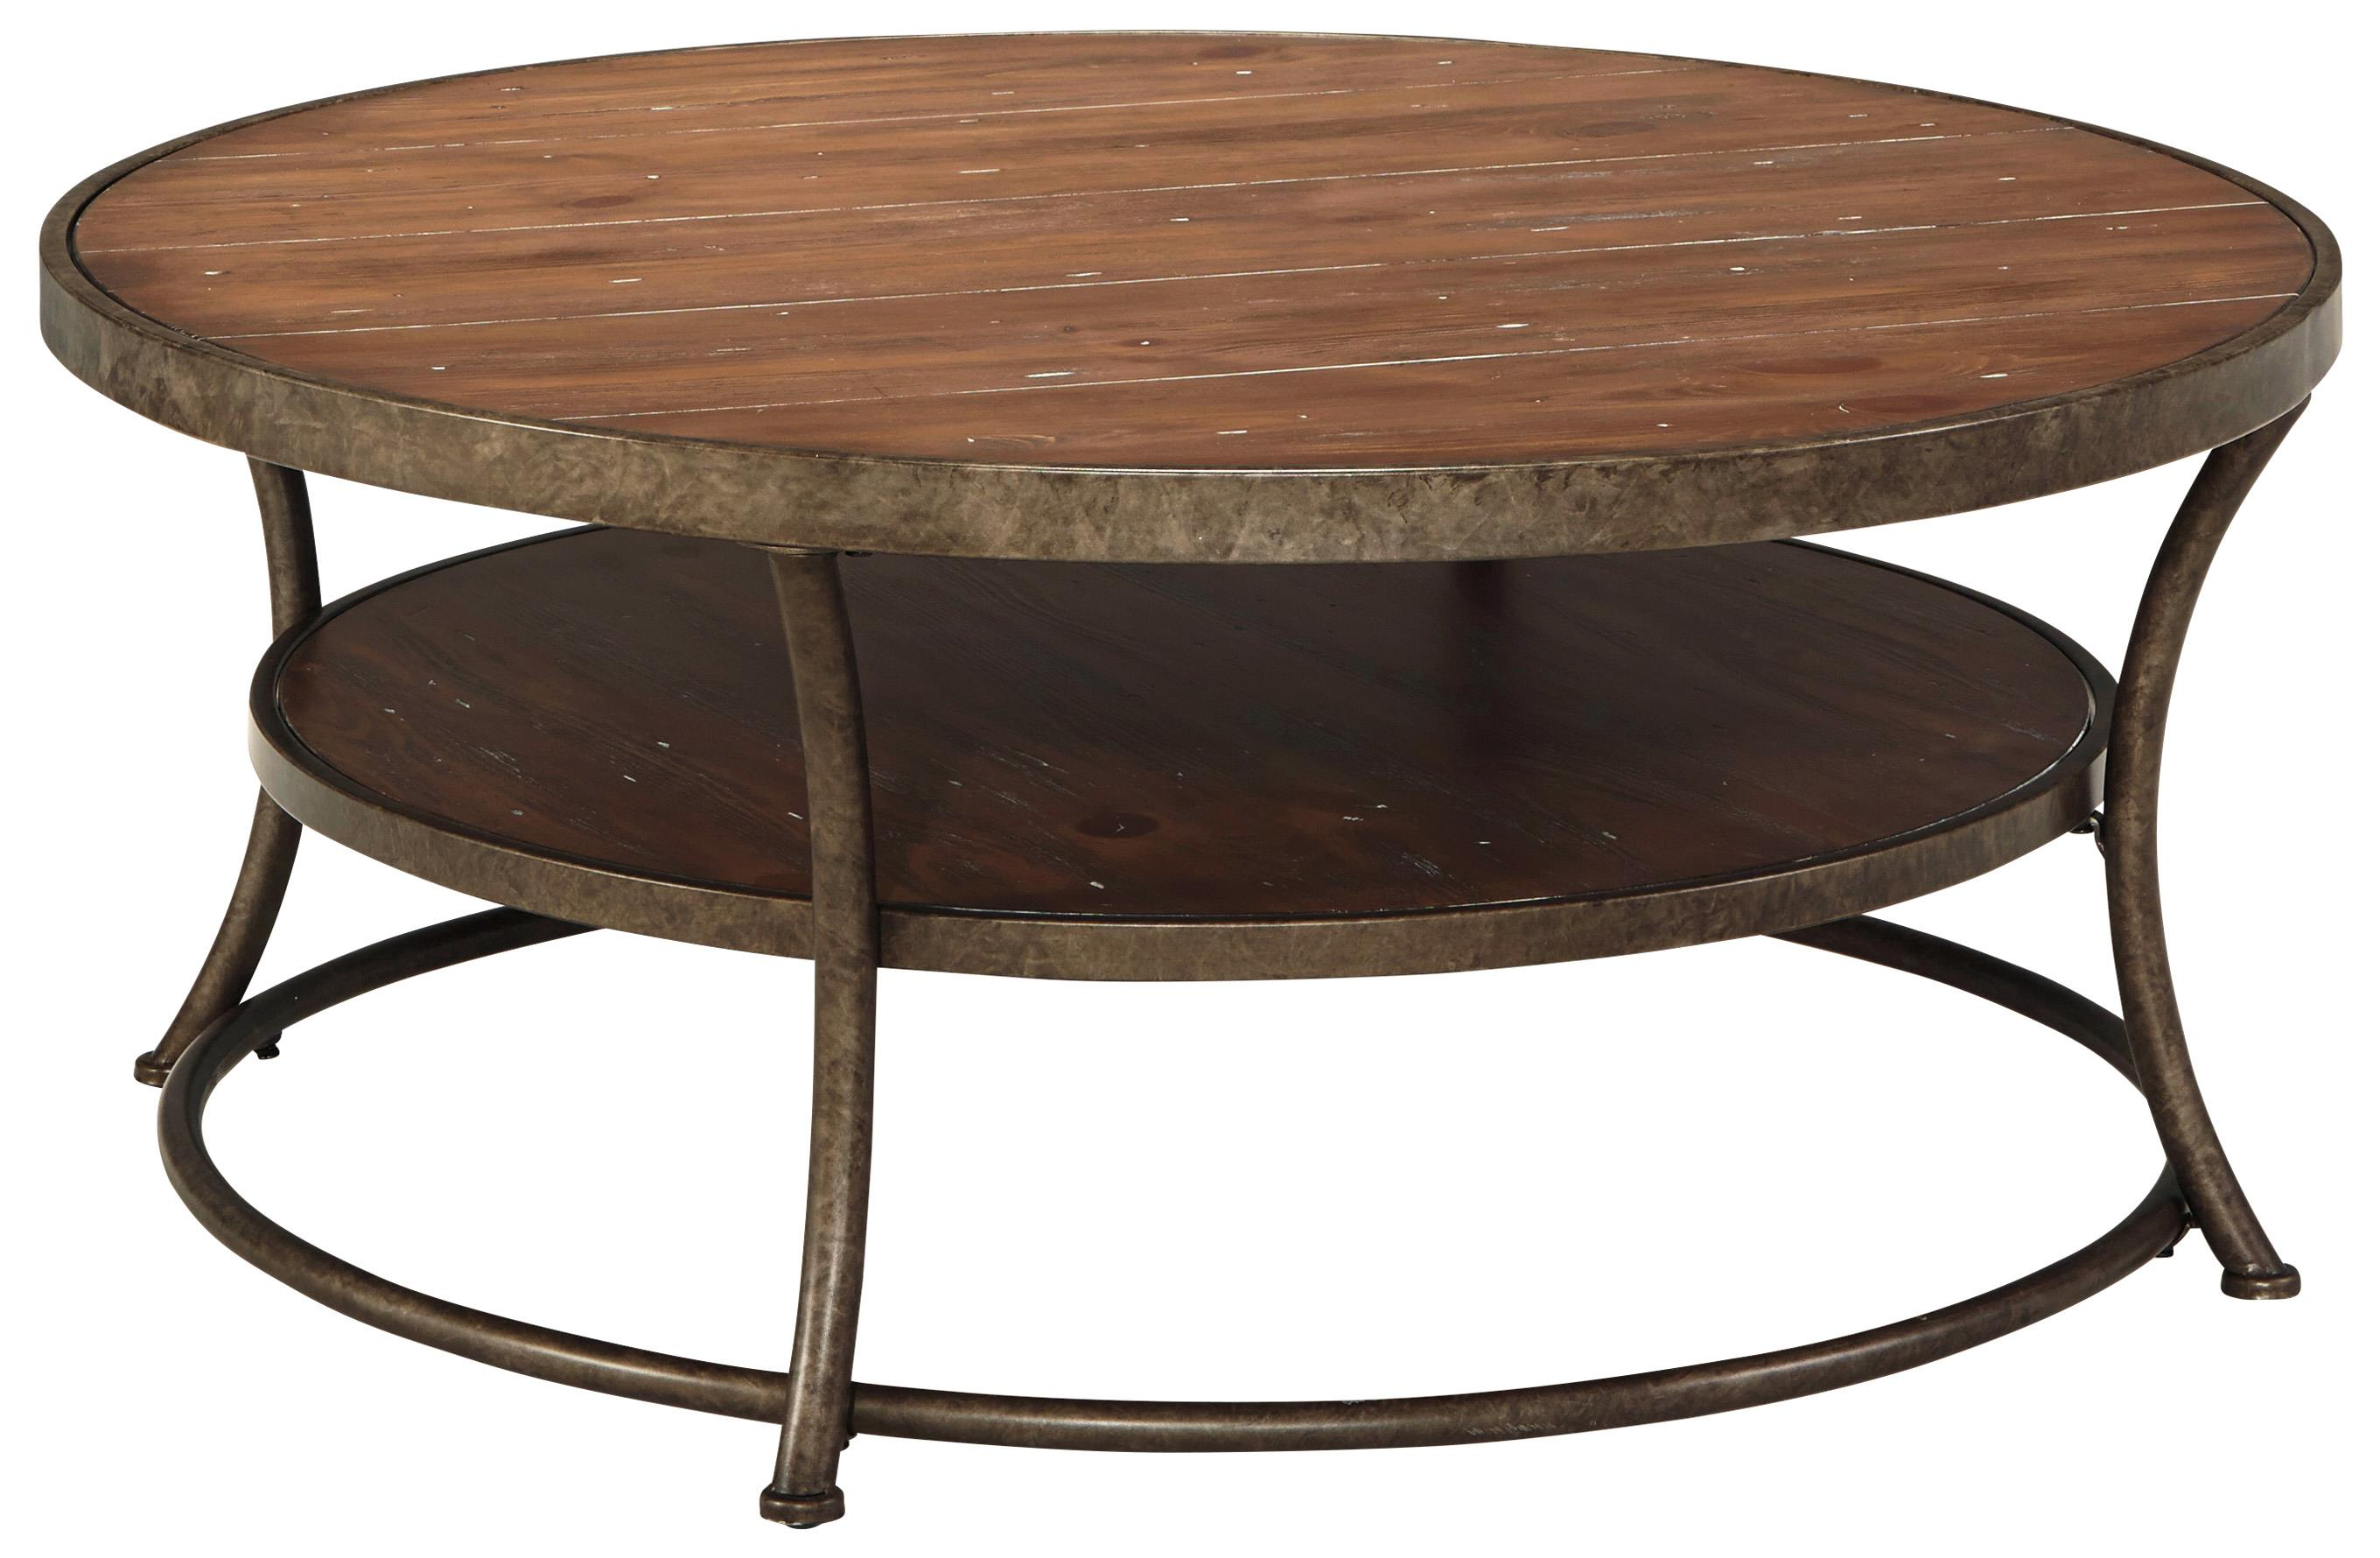 Signature Design by Ashley Nartina Round Cocktail Table - Item Number: T805-8